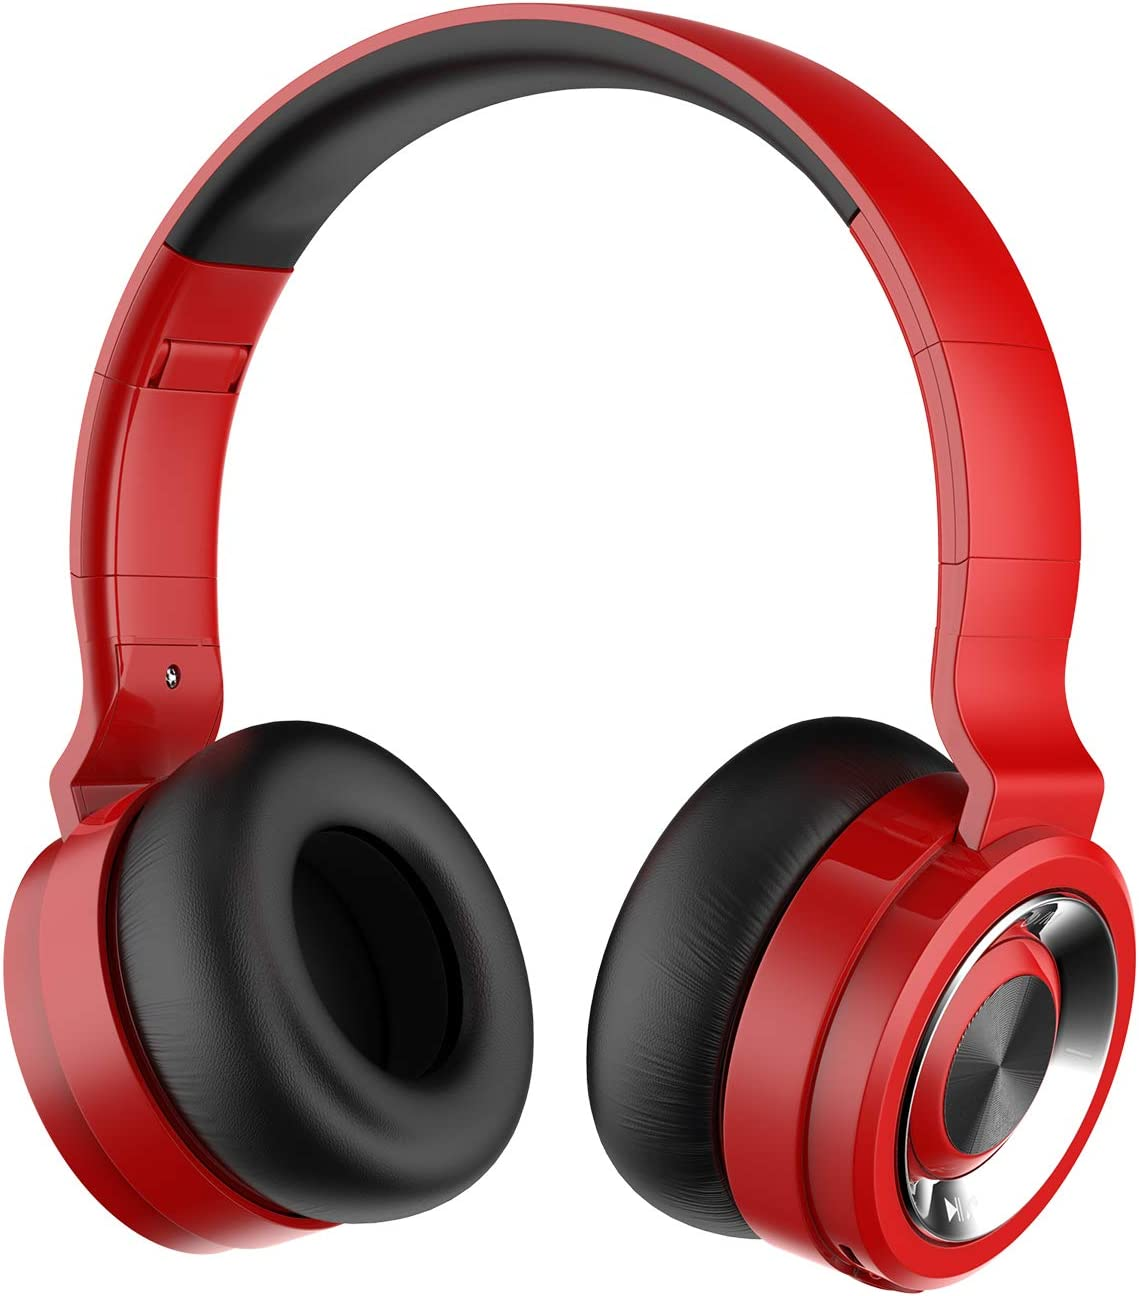 Alitoo Auriculares Bluetooth de Diadema Inalámbricos, Cascos Bluetooth Plegable Wireless Headphones Over Ear con Micrófono para TV, PC, Tablet, Móvil (Rojo)